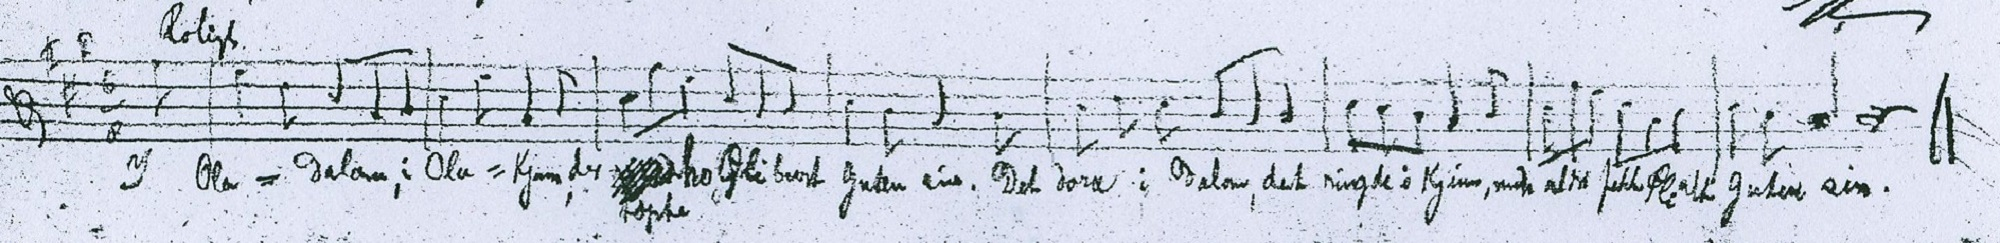 Frants Beyer's transcription of the melody used in Frederick Delius' On hearing the first cuckoo in spring